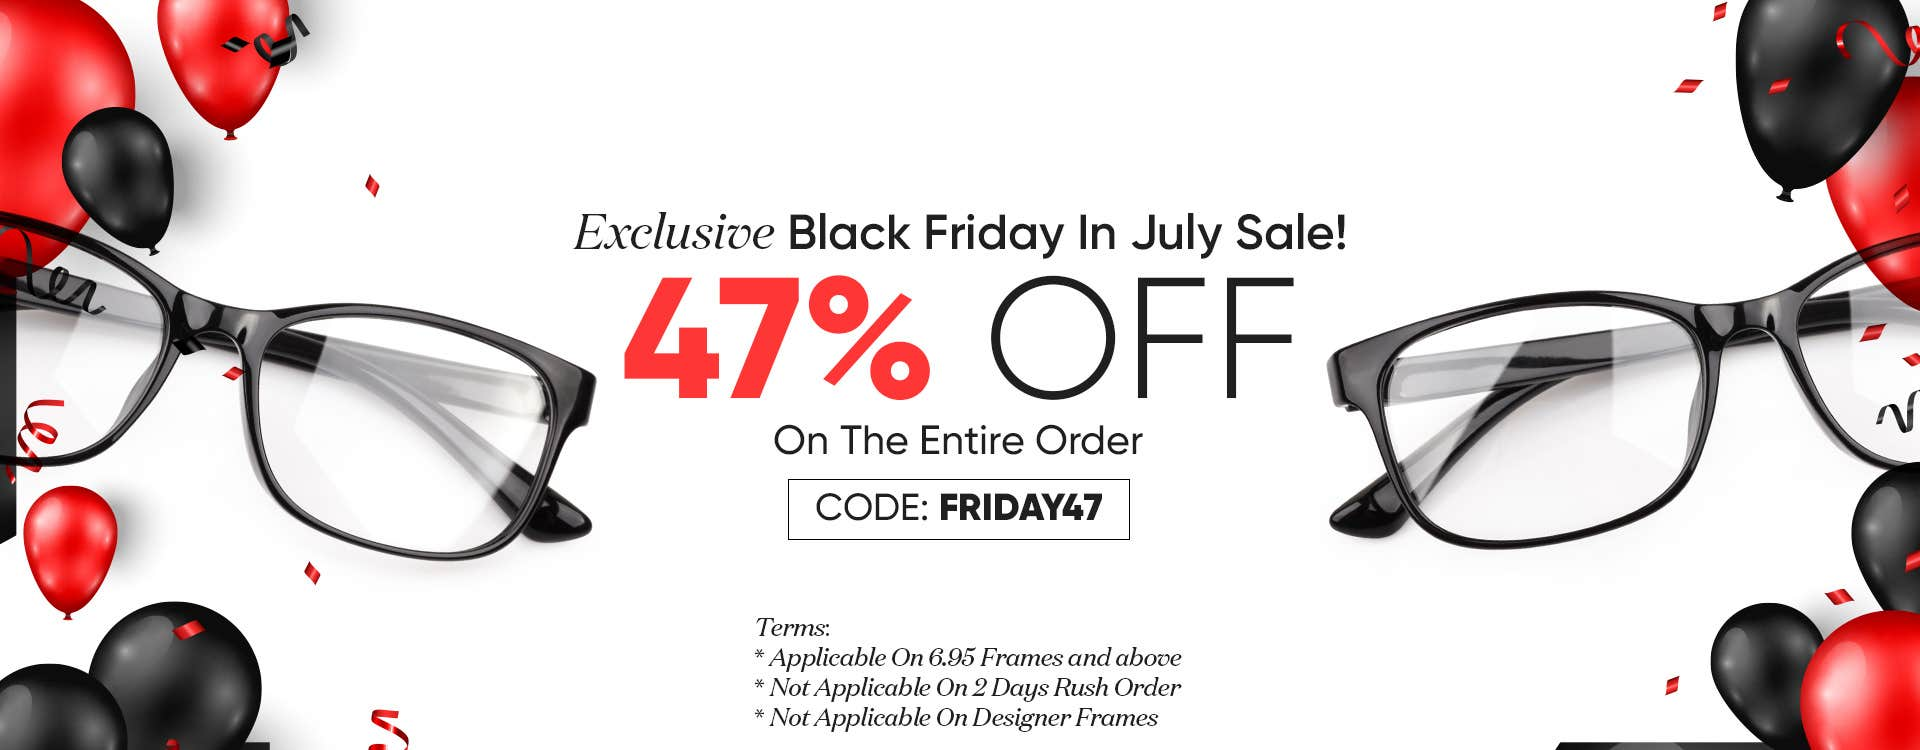 Black Friday In July, 47% OFF On The Entire Order CODE: Friday47